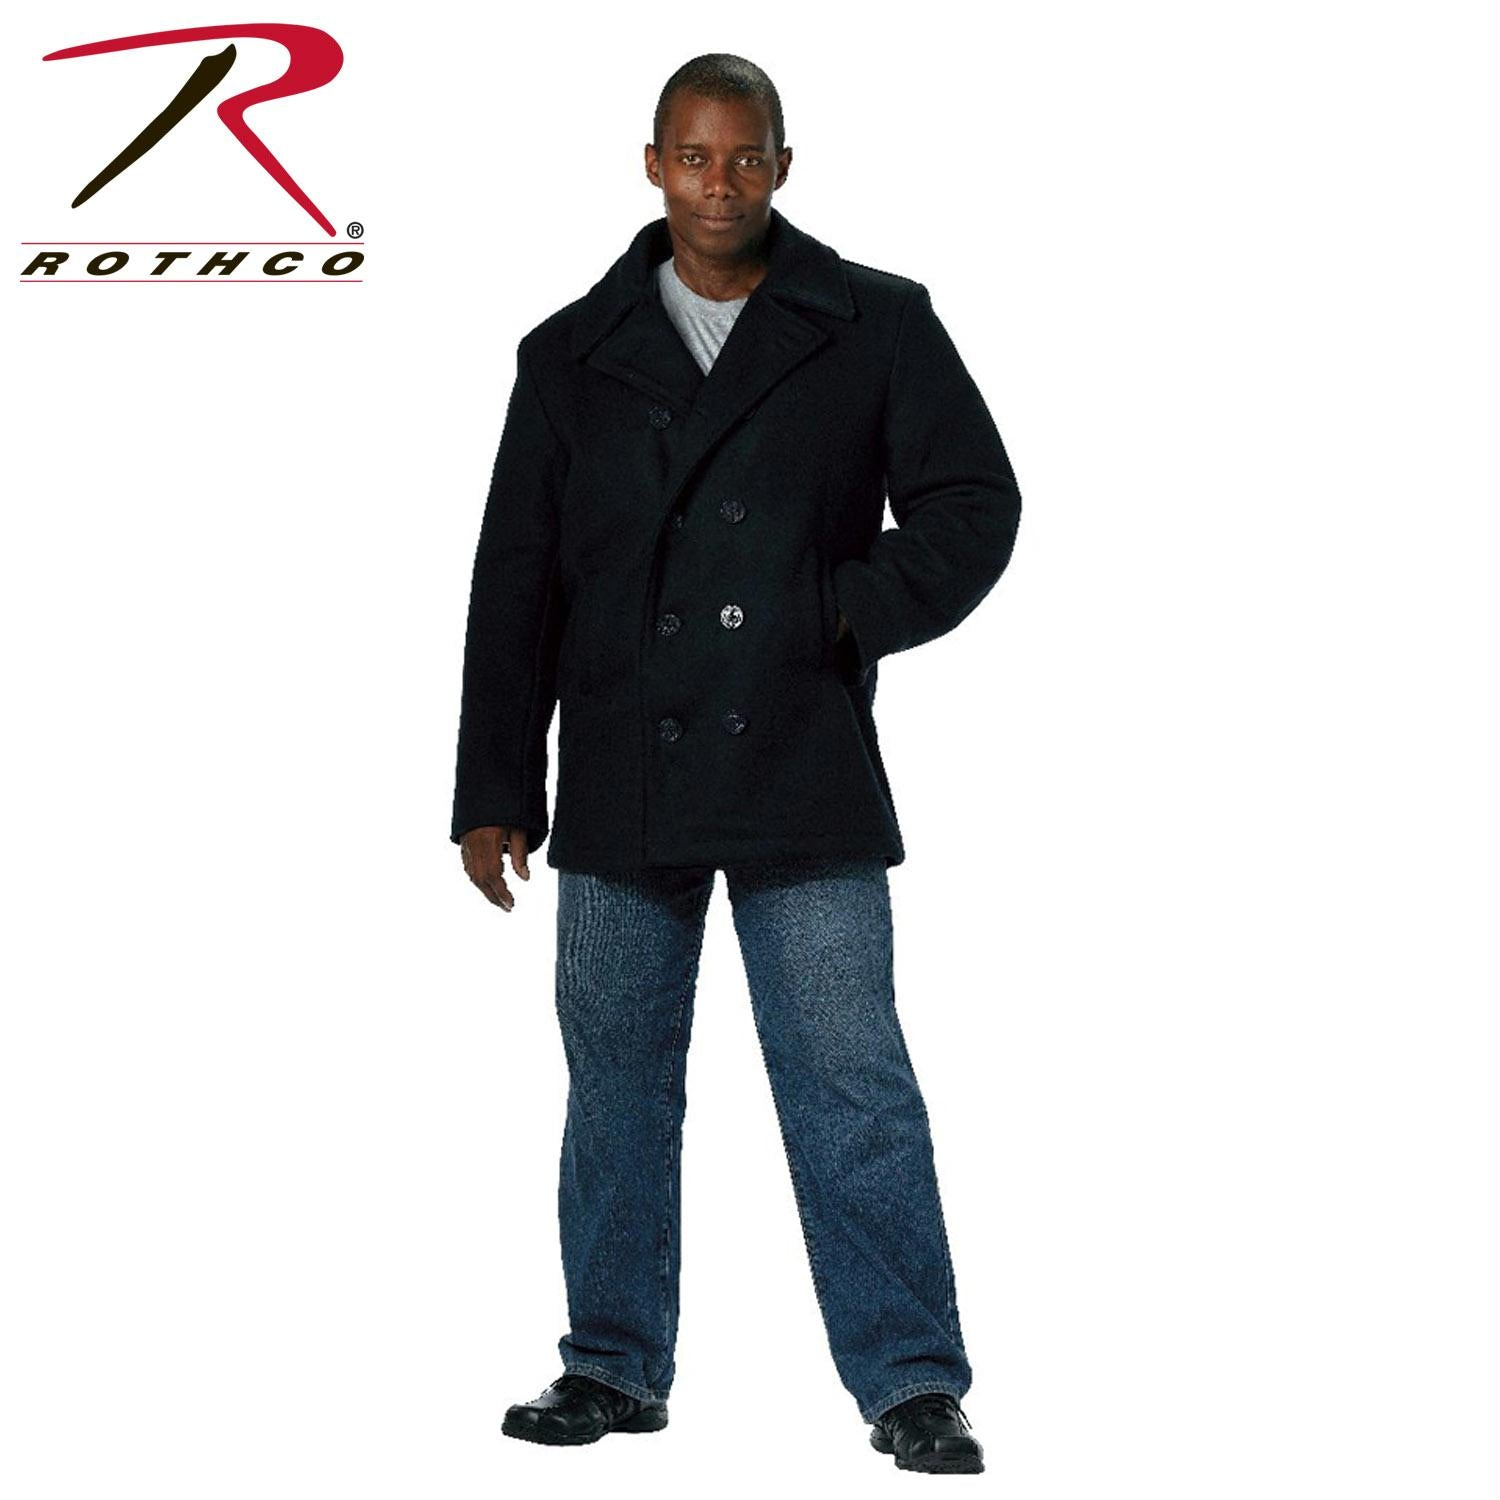 Rothco US Navy Type Pea Coat - Navy Blue / M